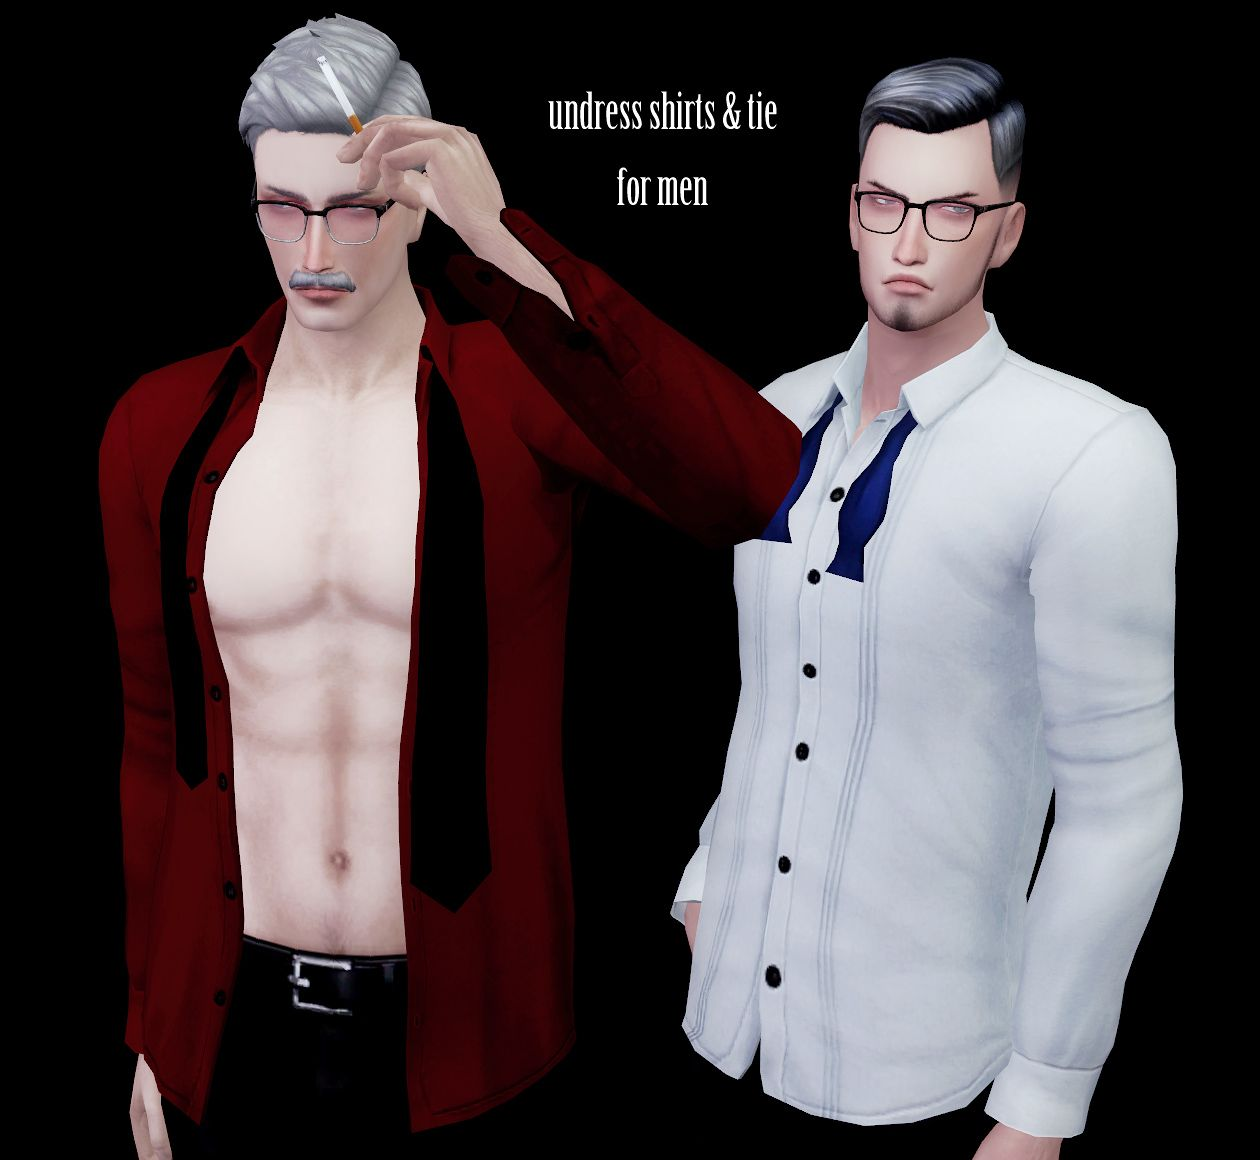 S:imadako tumblr-[undress shirts + tie set for    | sims 4 men's